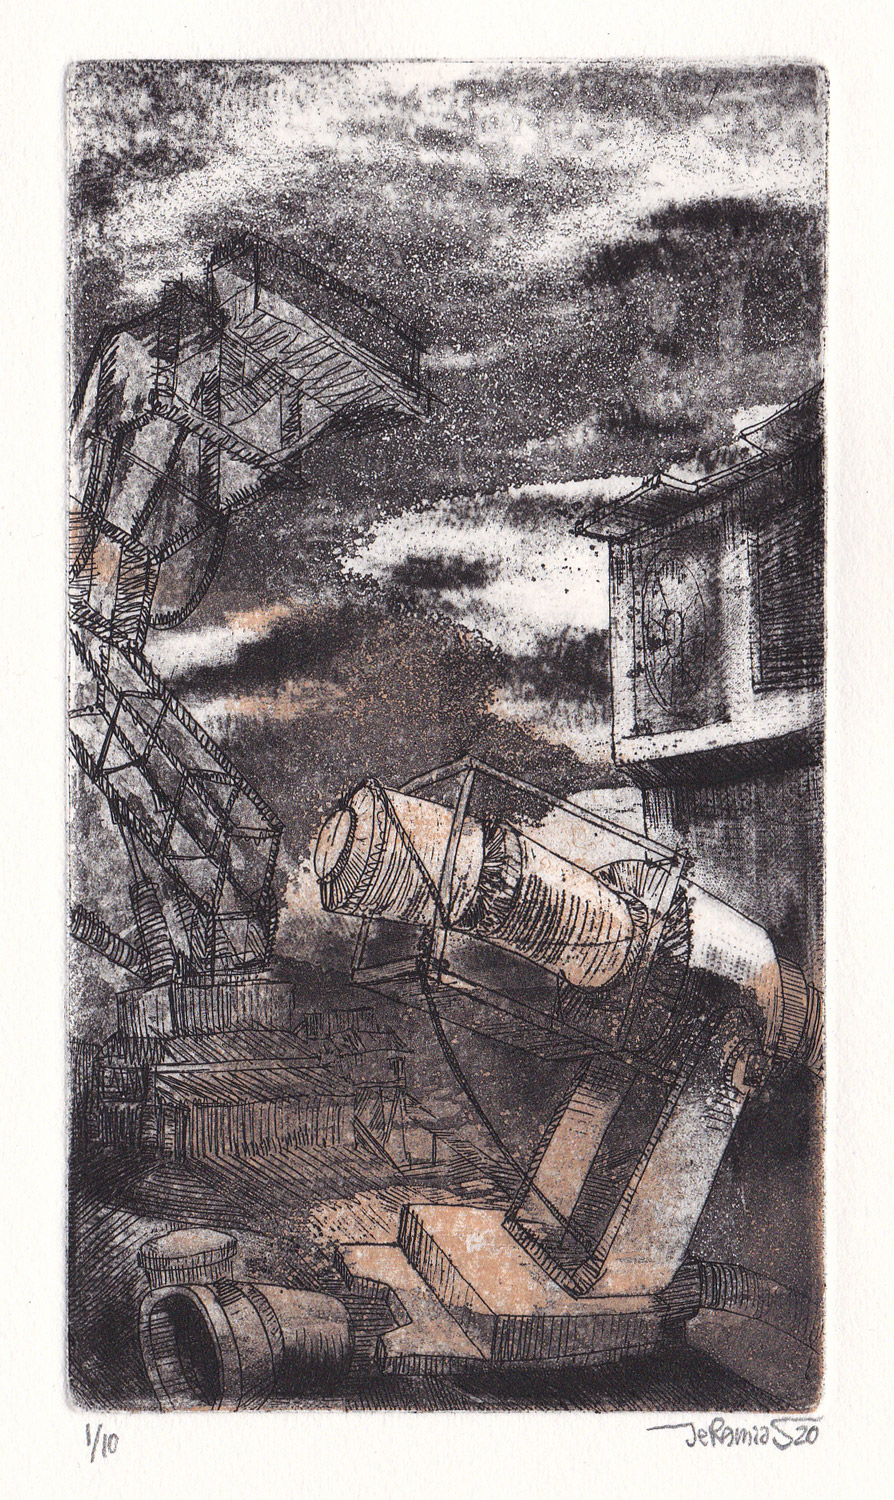 From the series: MACHINES 020; 8 x 14 cm; etching; 2020